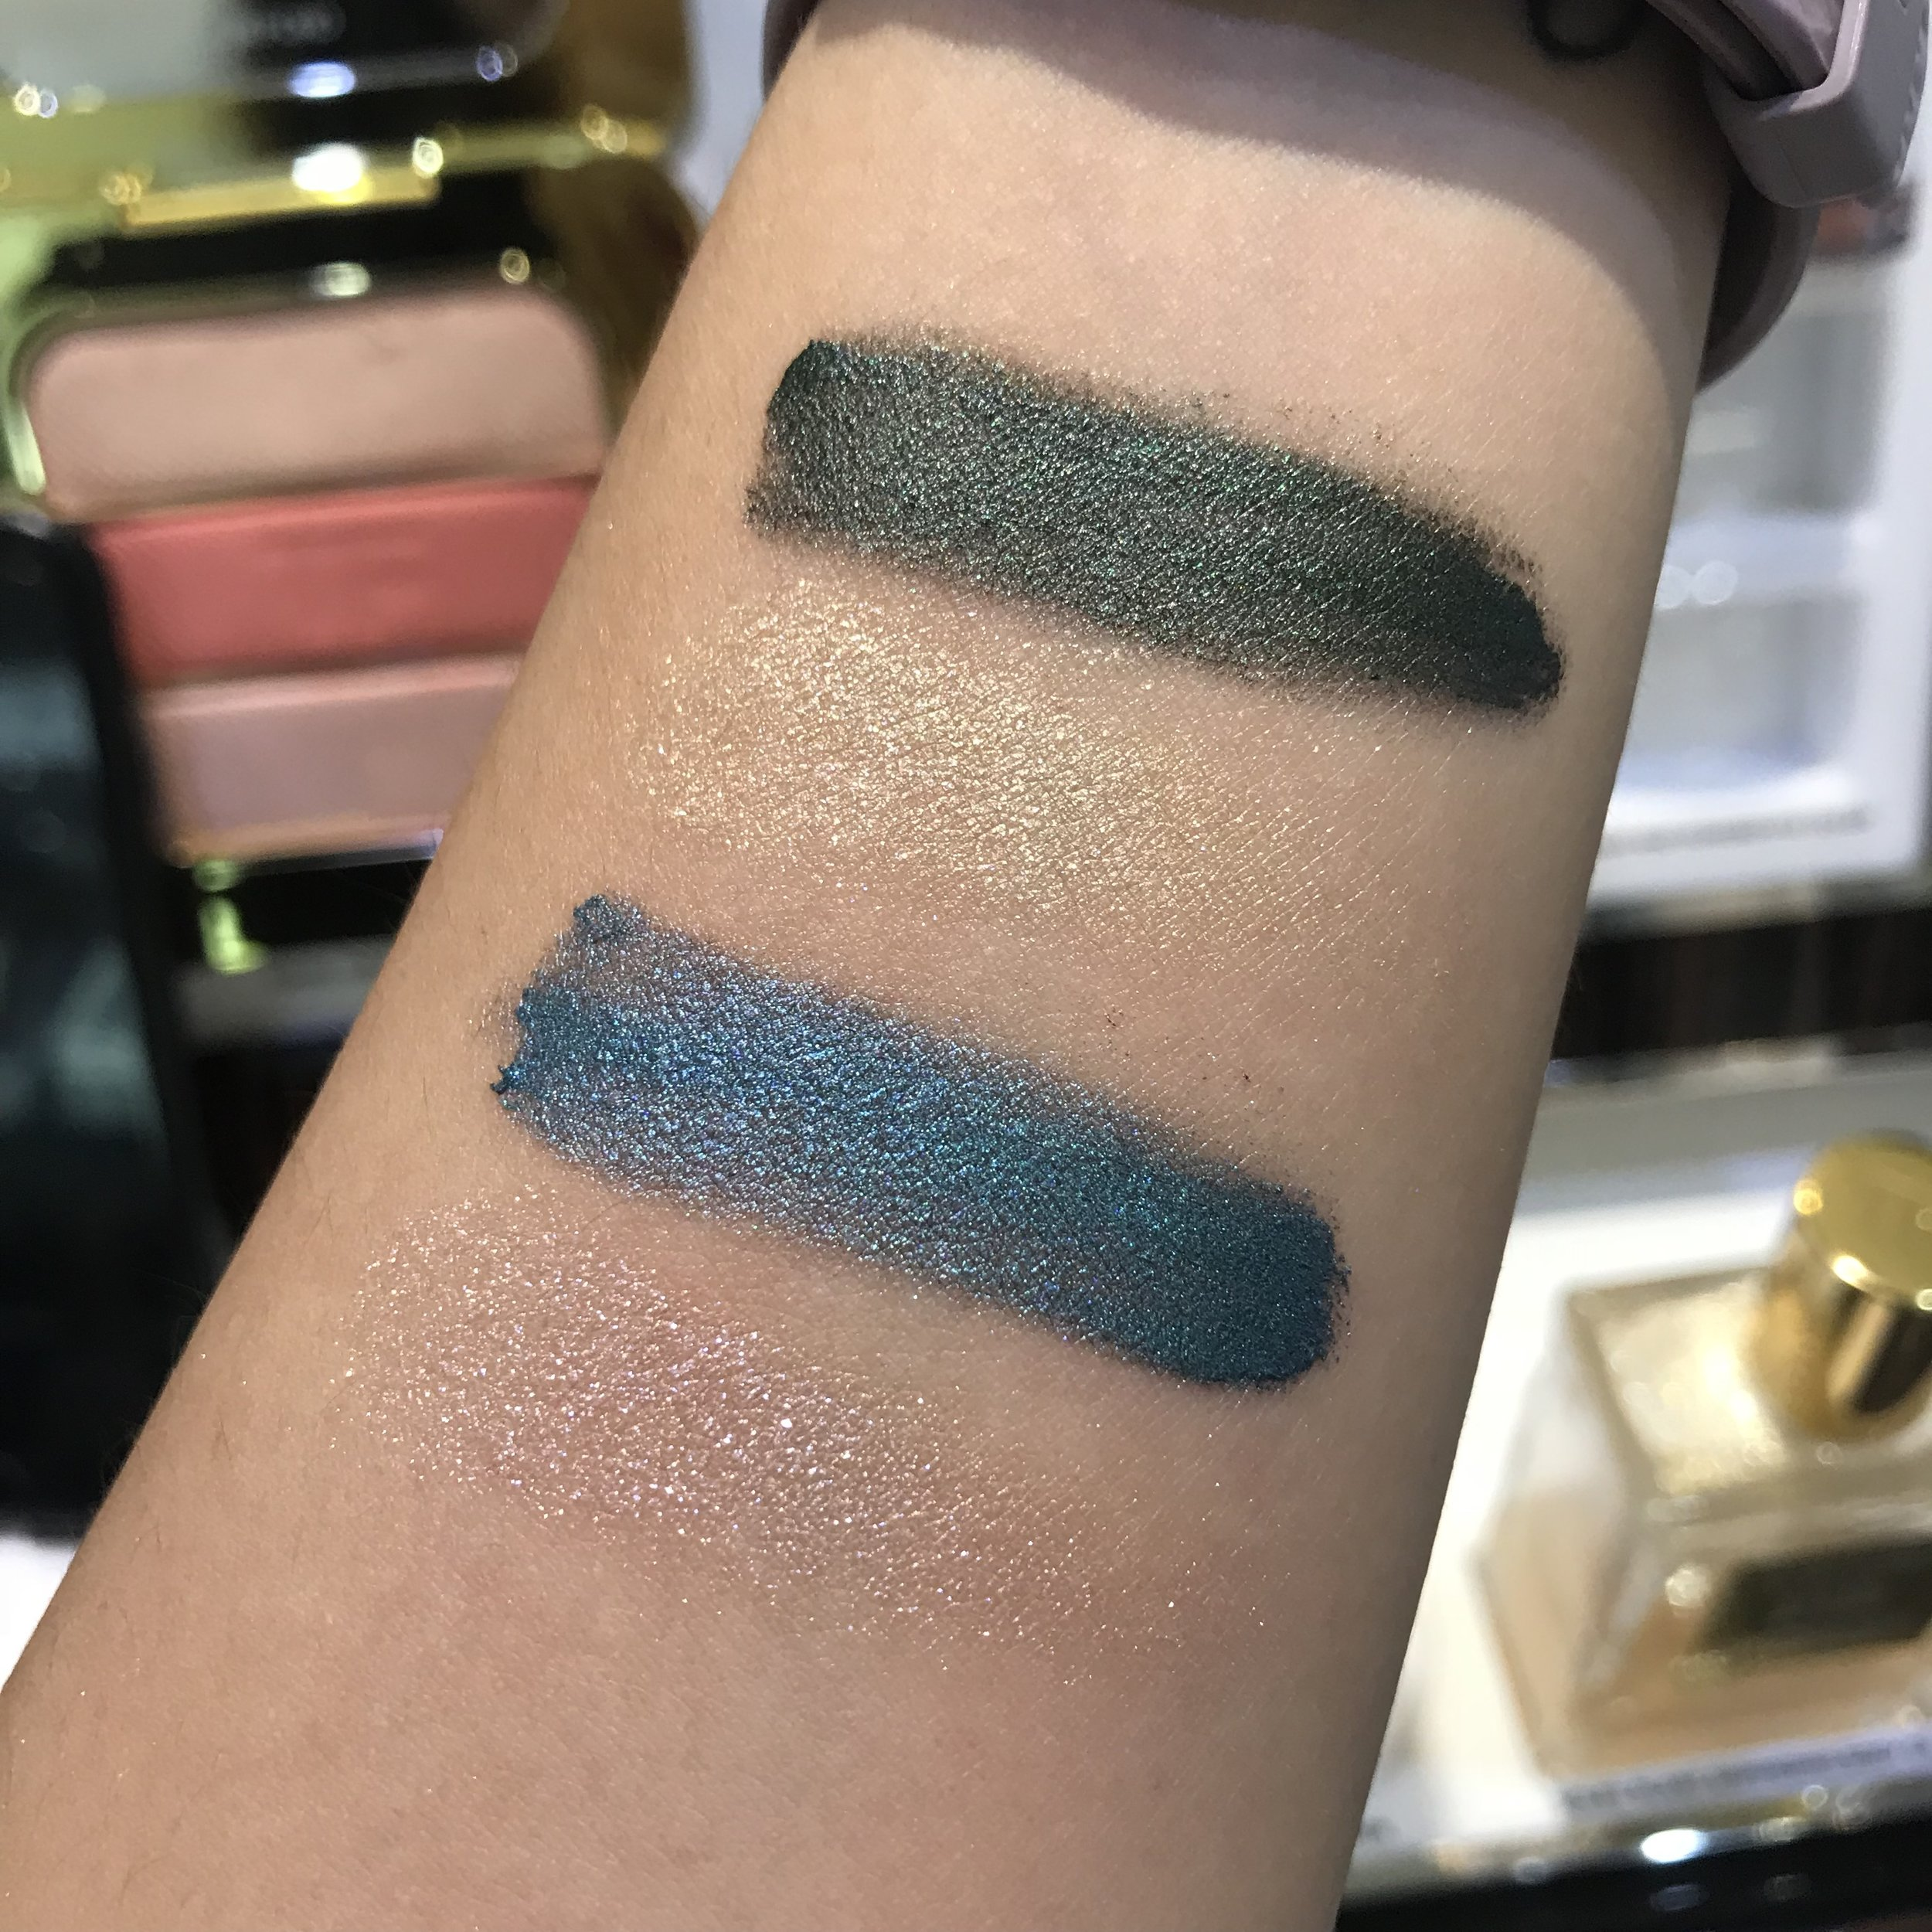 Tomford Cream to Powder eyeshadow duo in shade Emerald Isles and Azure